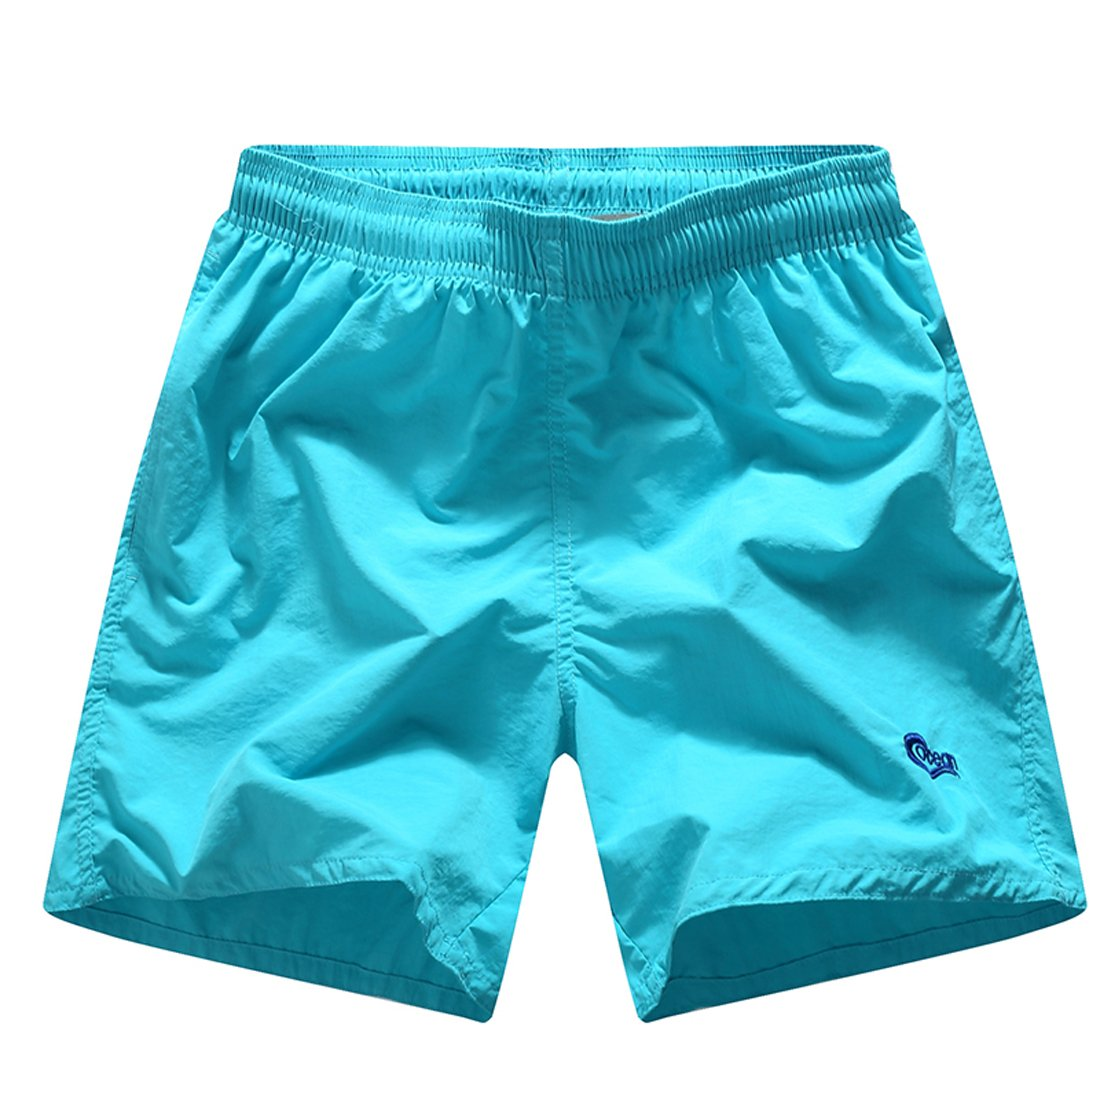 Men's Quick Dry Beach Shorts with Mesh Briefs Breathable Swim Trunks 5 Inseam